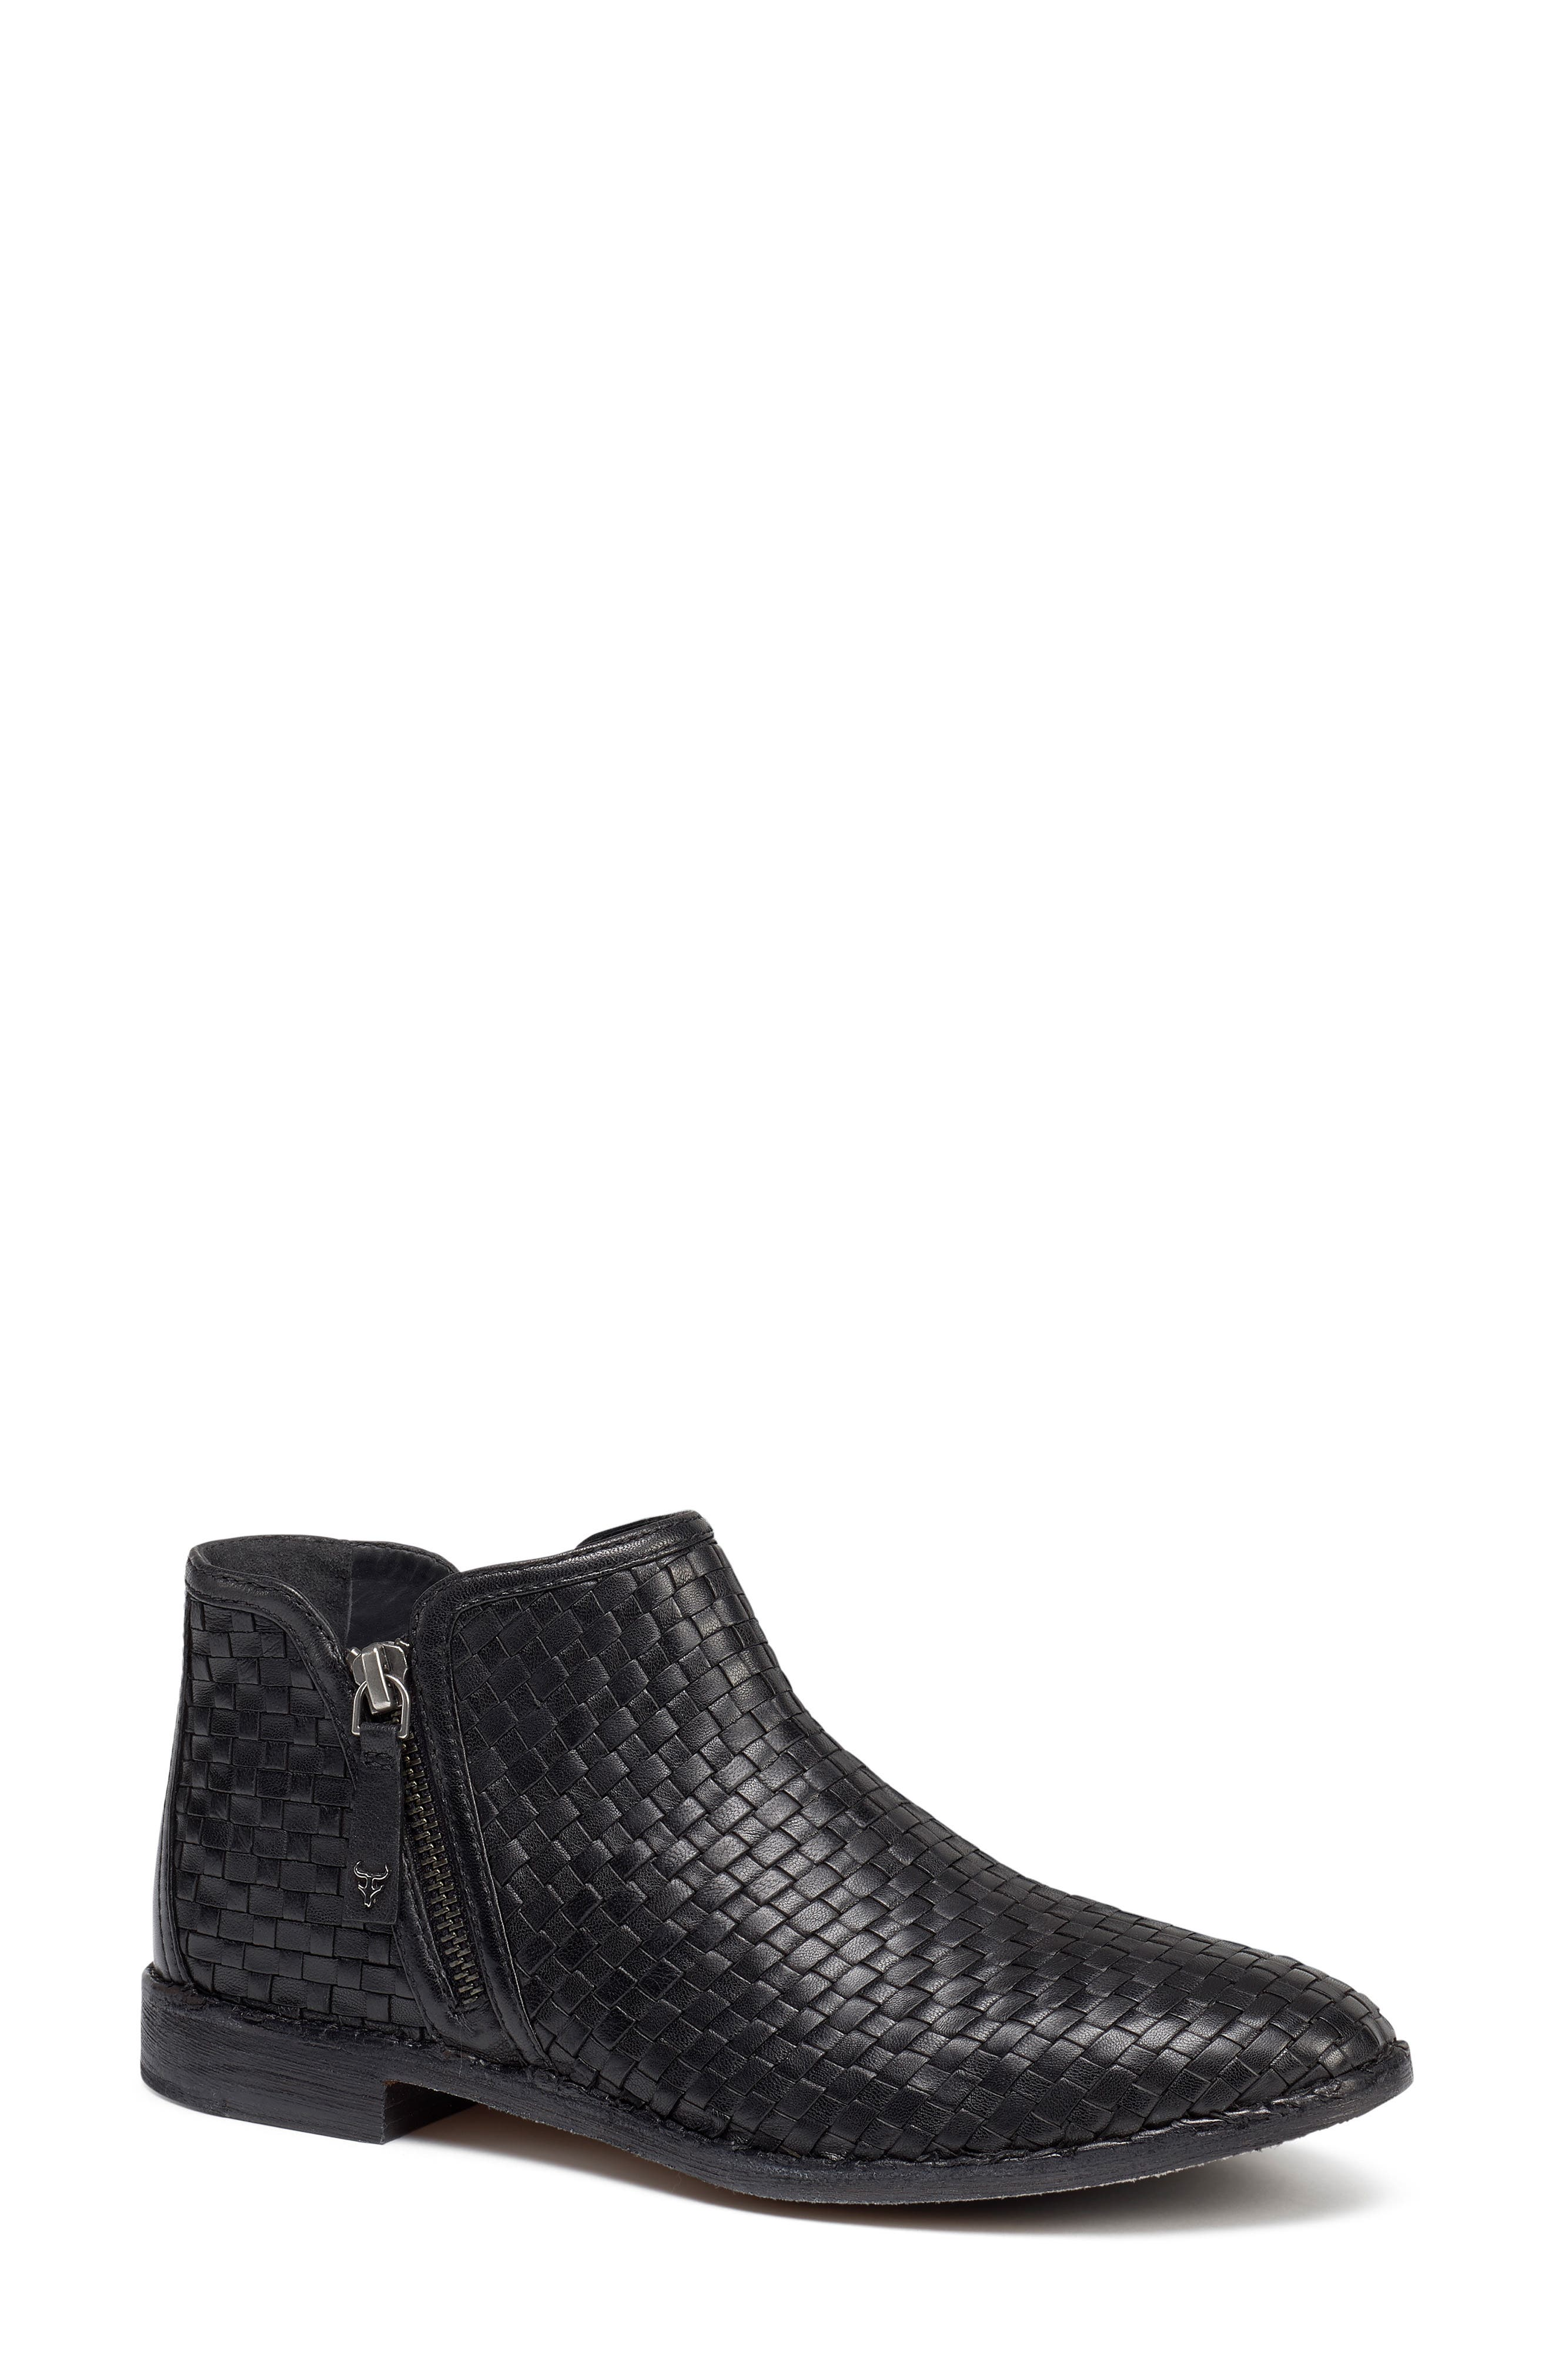 Trask Amy Woven Leather Bootie, Black